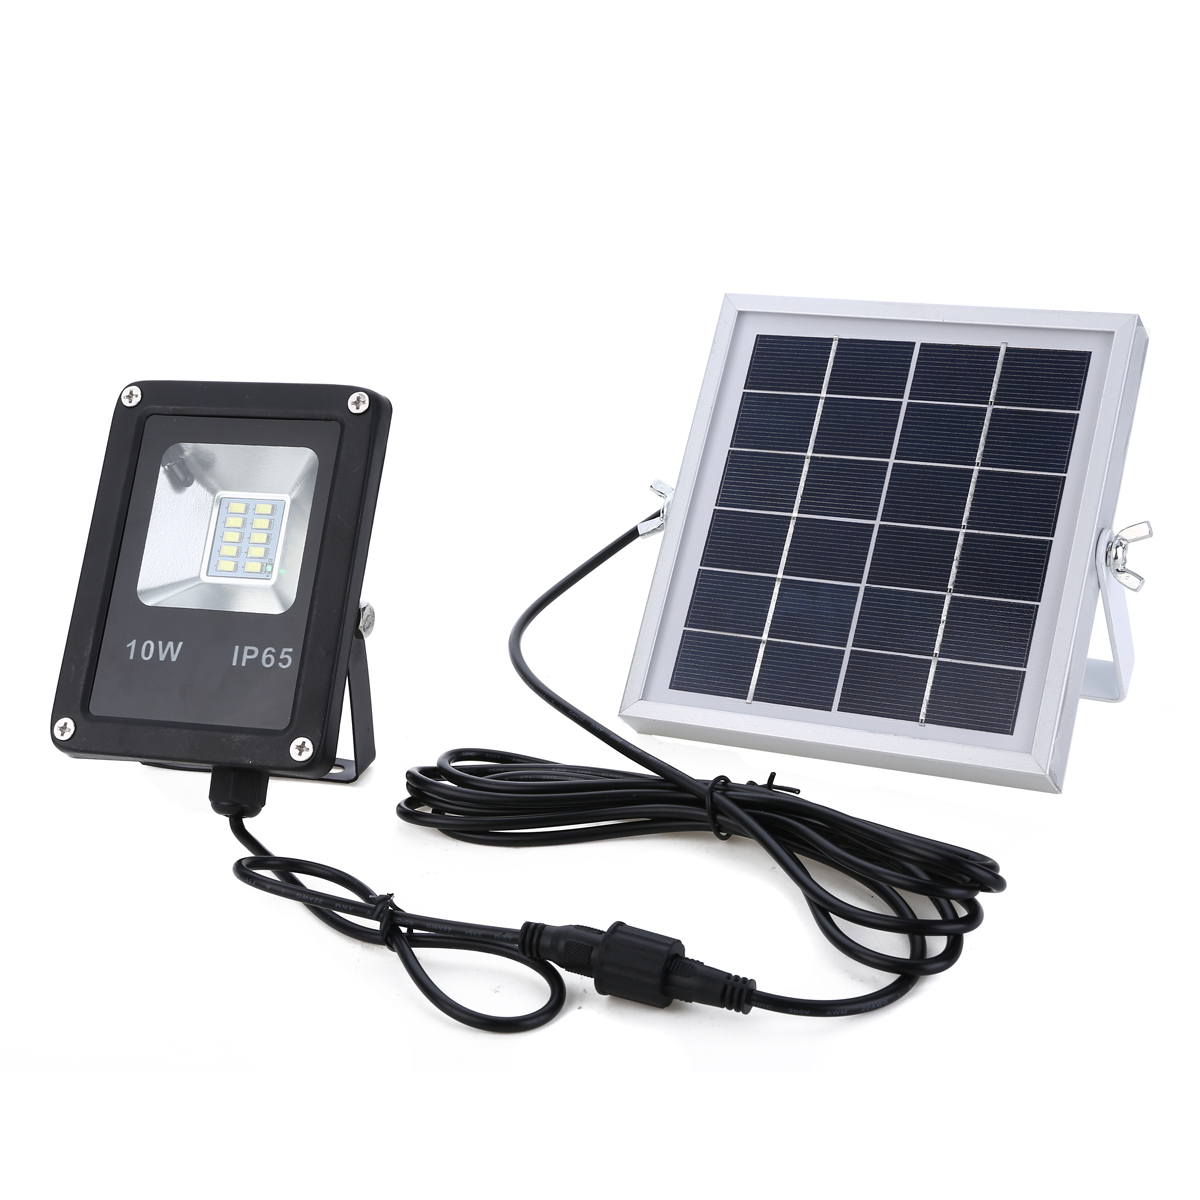 10W LED Solar Sensor Lamp Floodlight Light Waterproof IP66 Outdoor Emergency Security Garden Street Solar Light